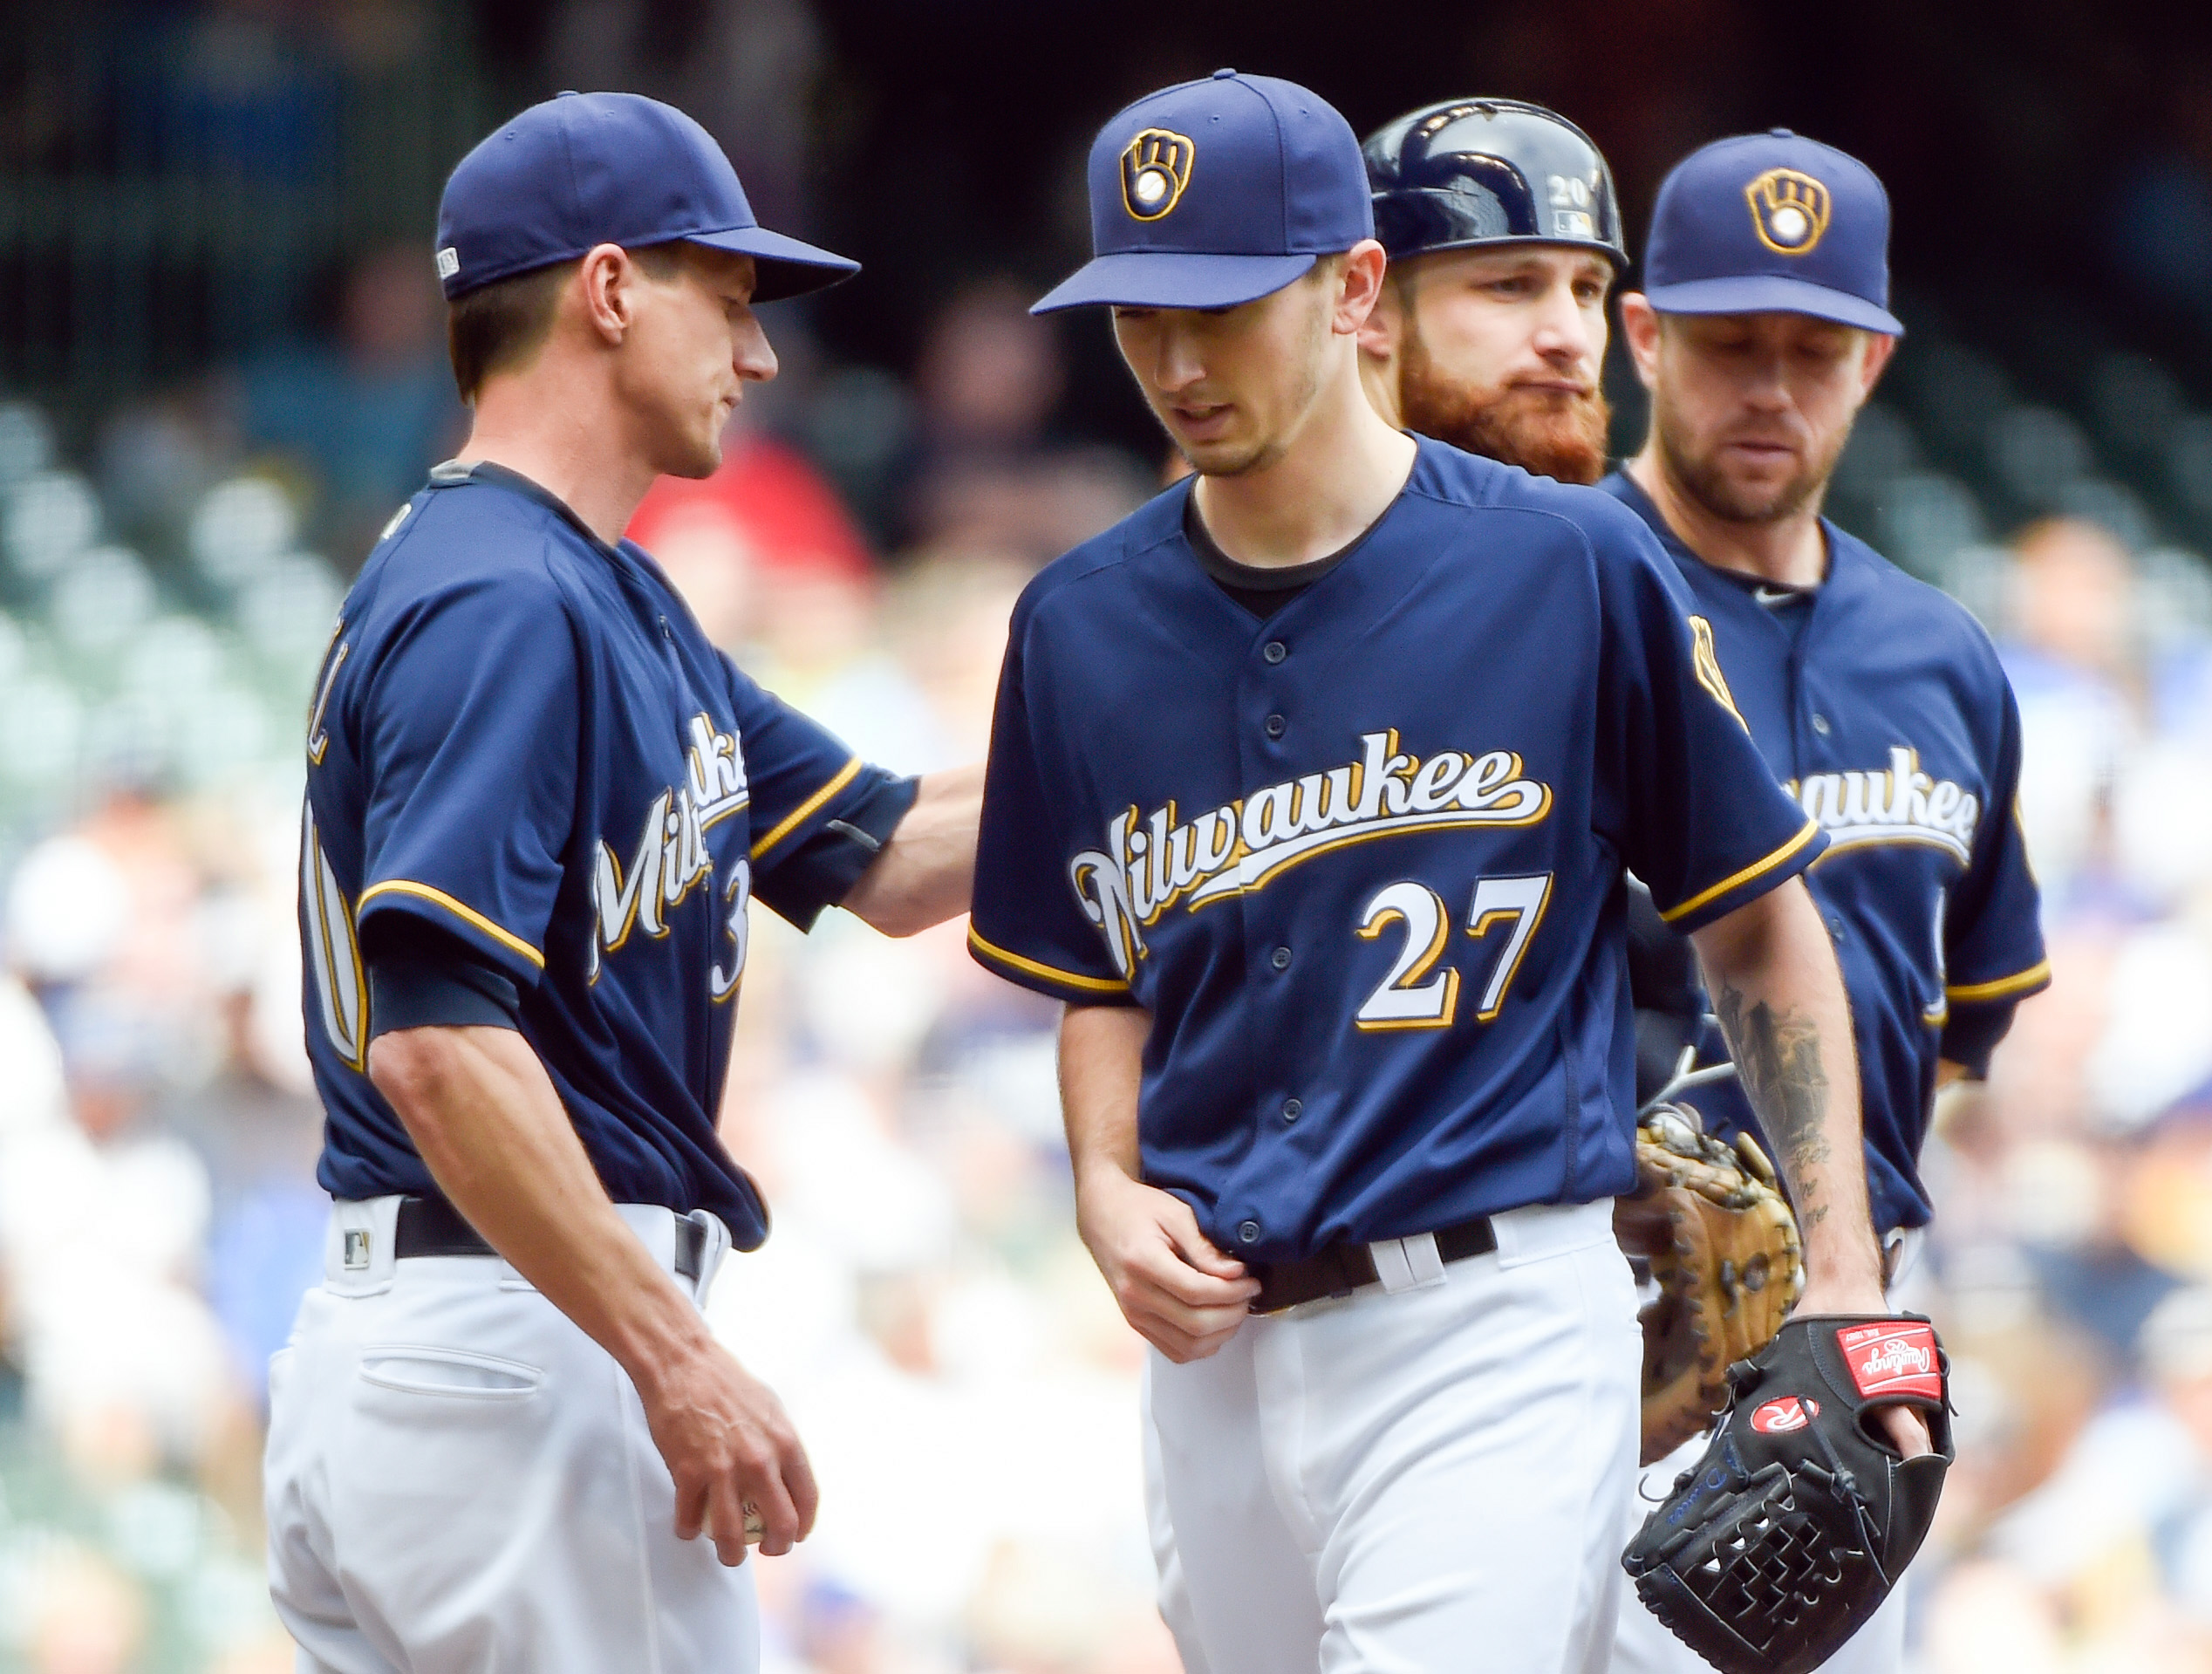 9337723-mlb-new-york-mets-at-milwaukee-brewers